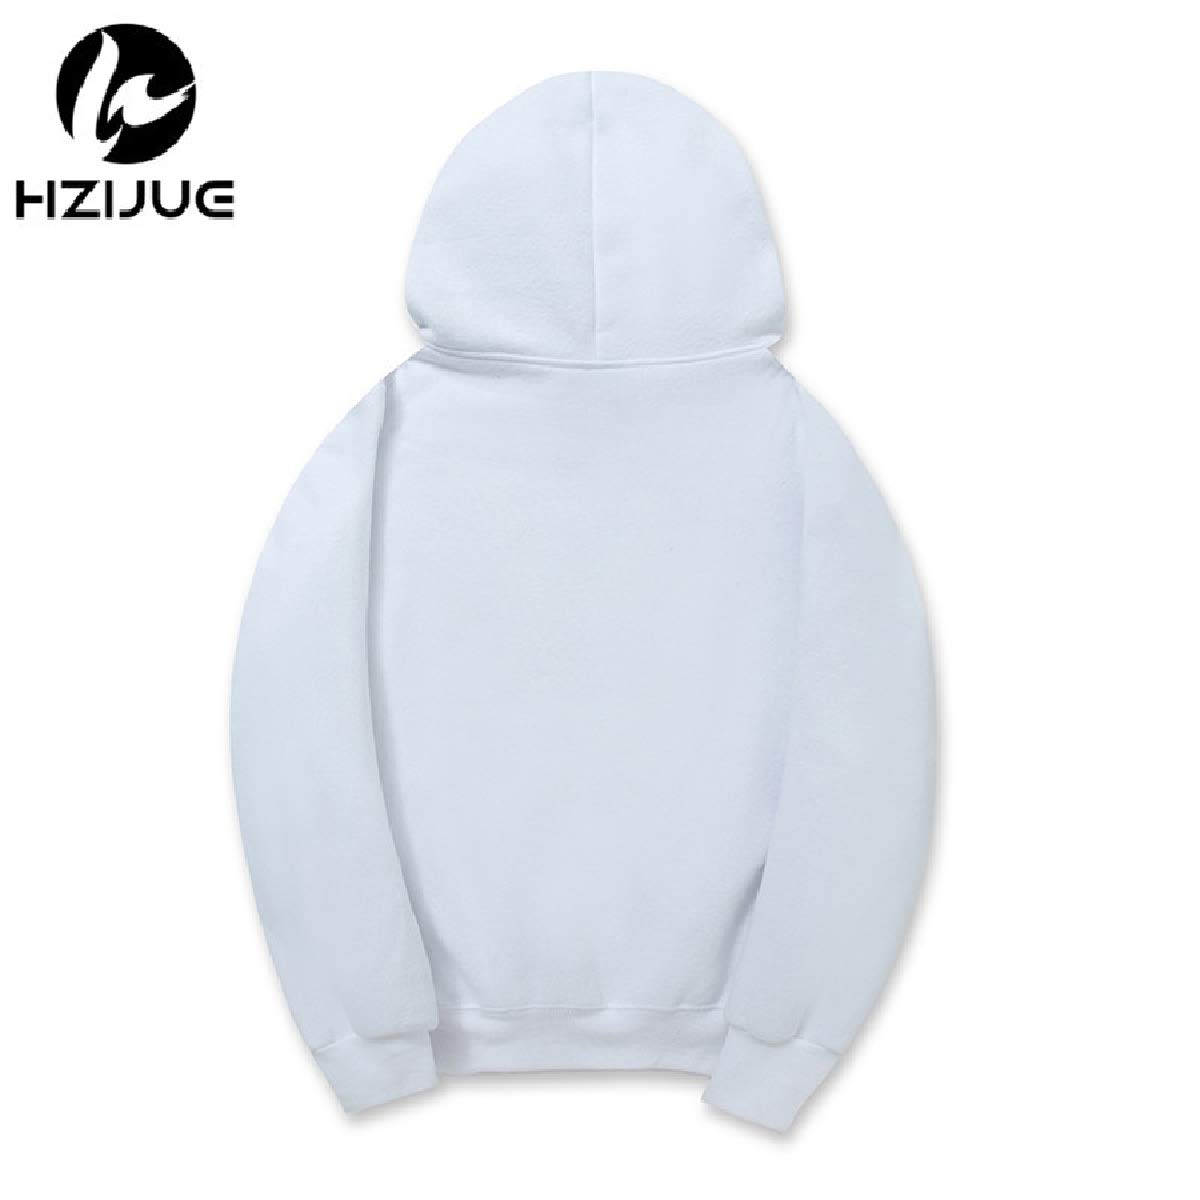 YUNY Men Pure Color Stylish Long Sleeve Plus Size Hoodies Sweater White S